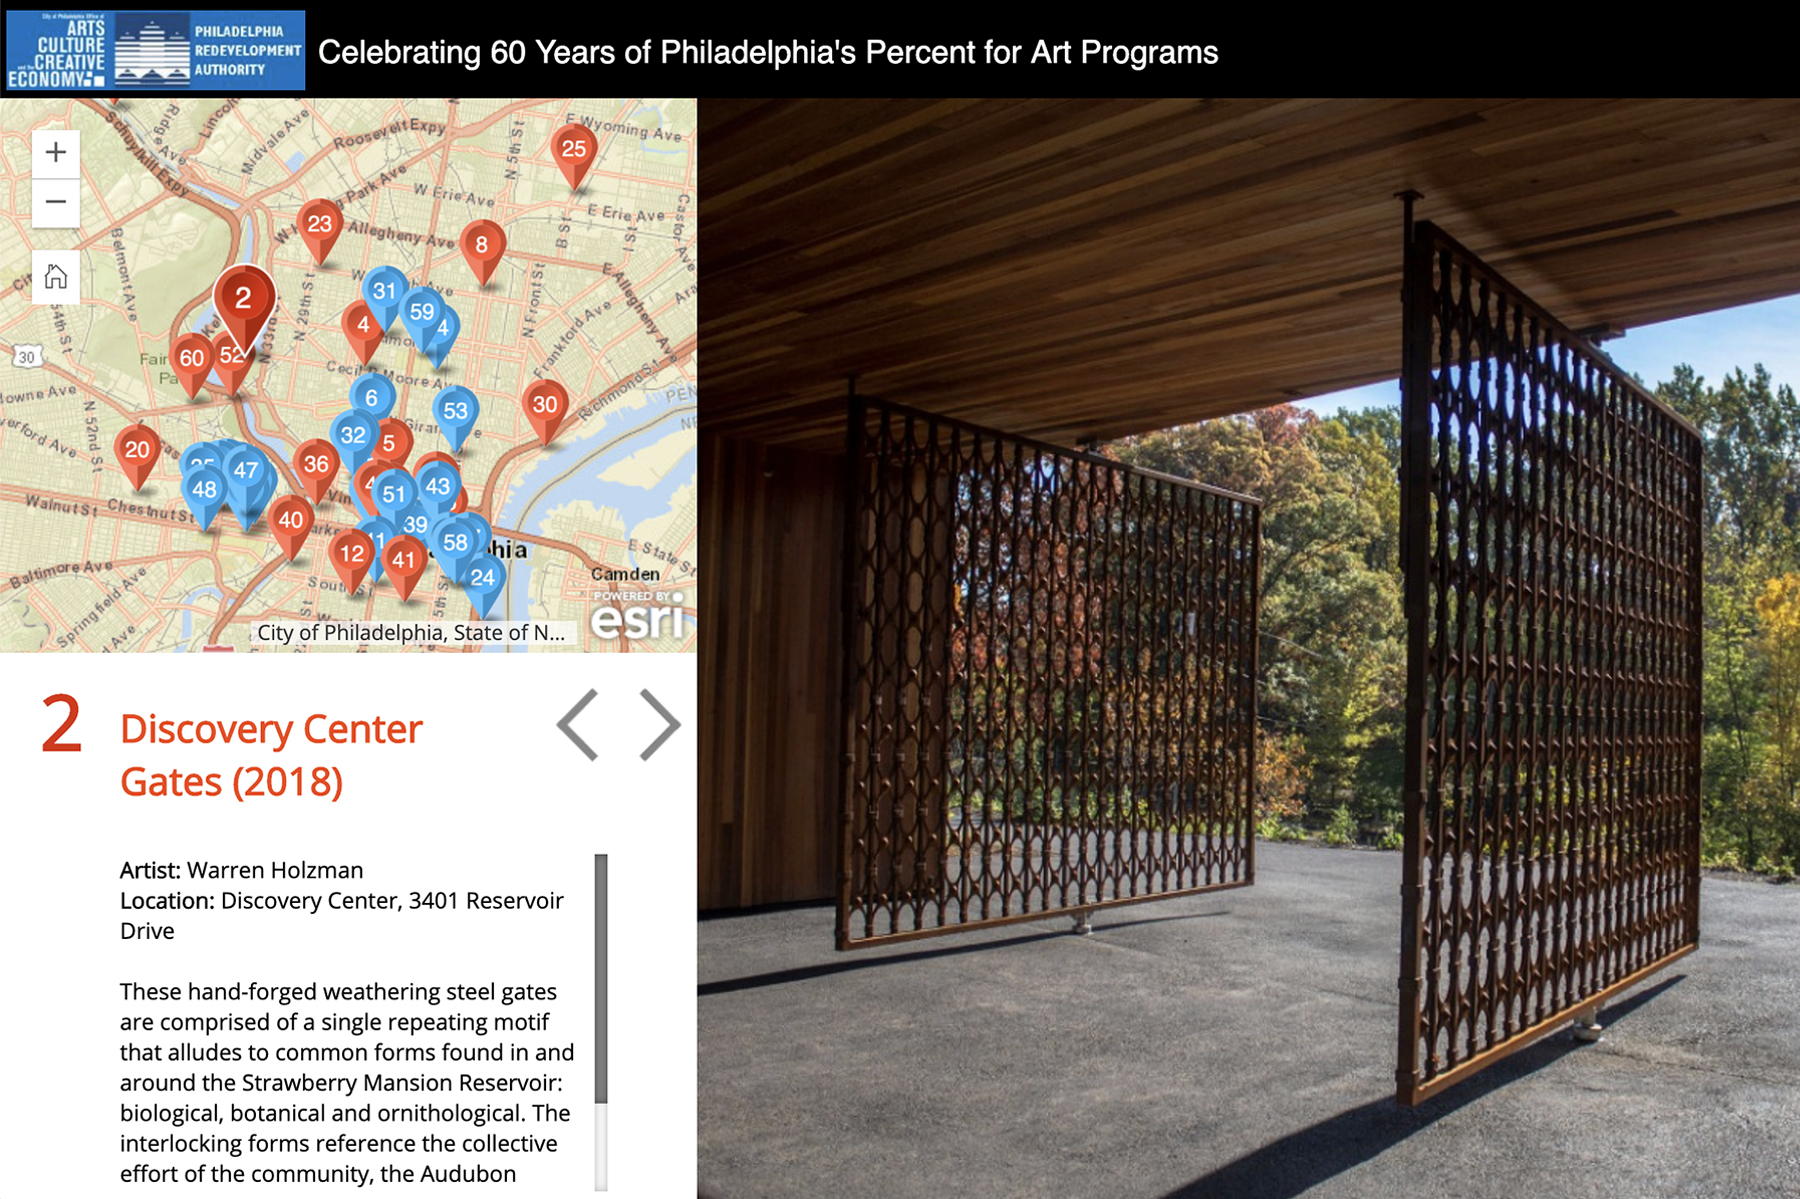 Virtual tour map to celebrate 60 years of Philadelphia's Percent for Art Programs